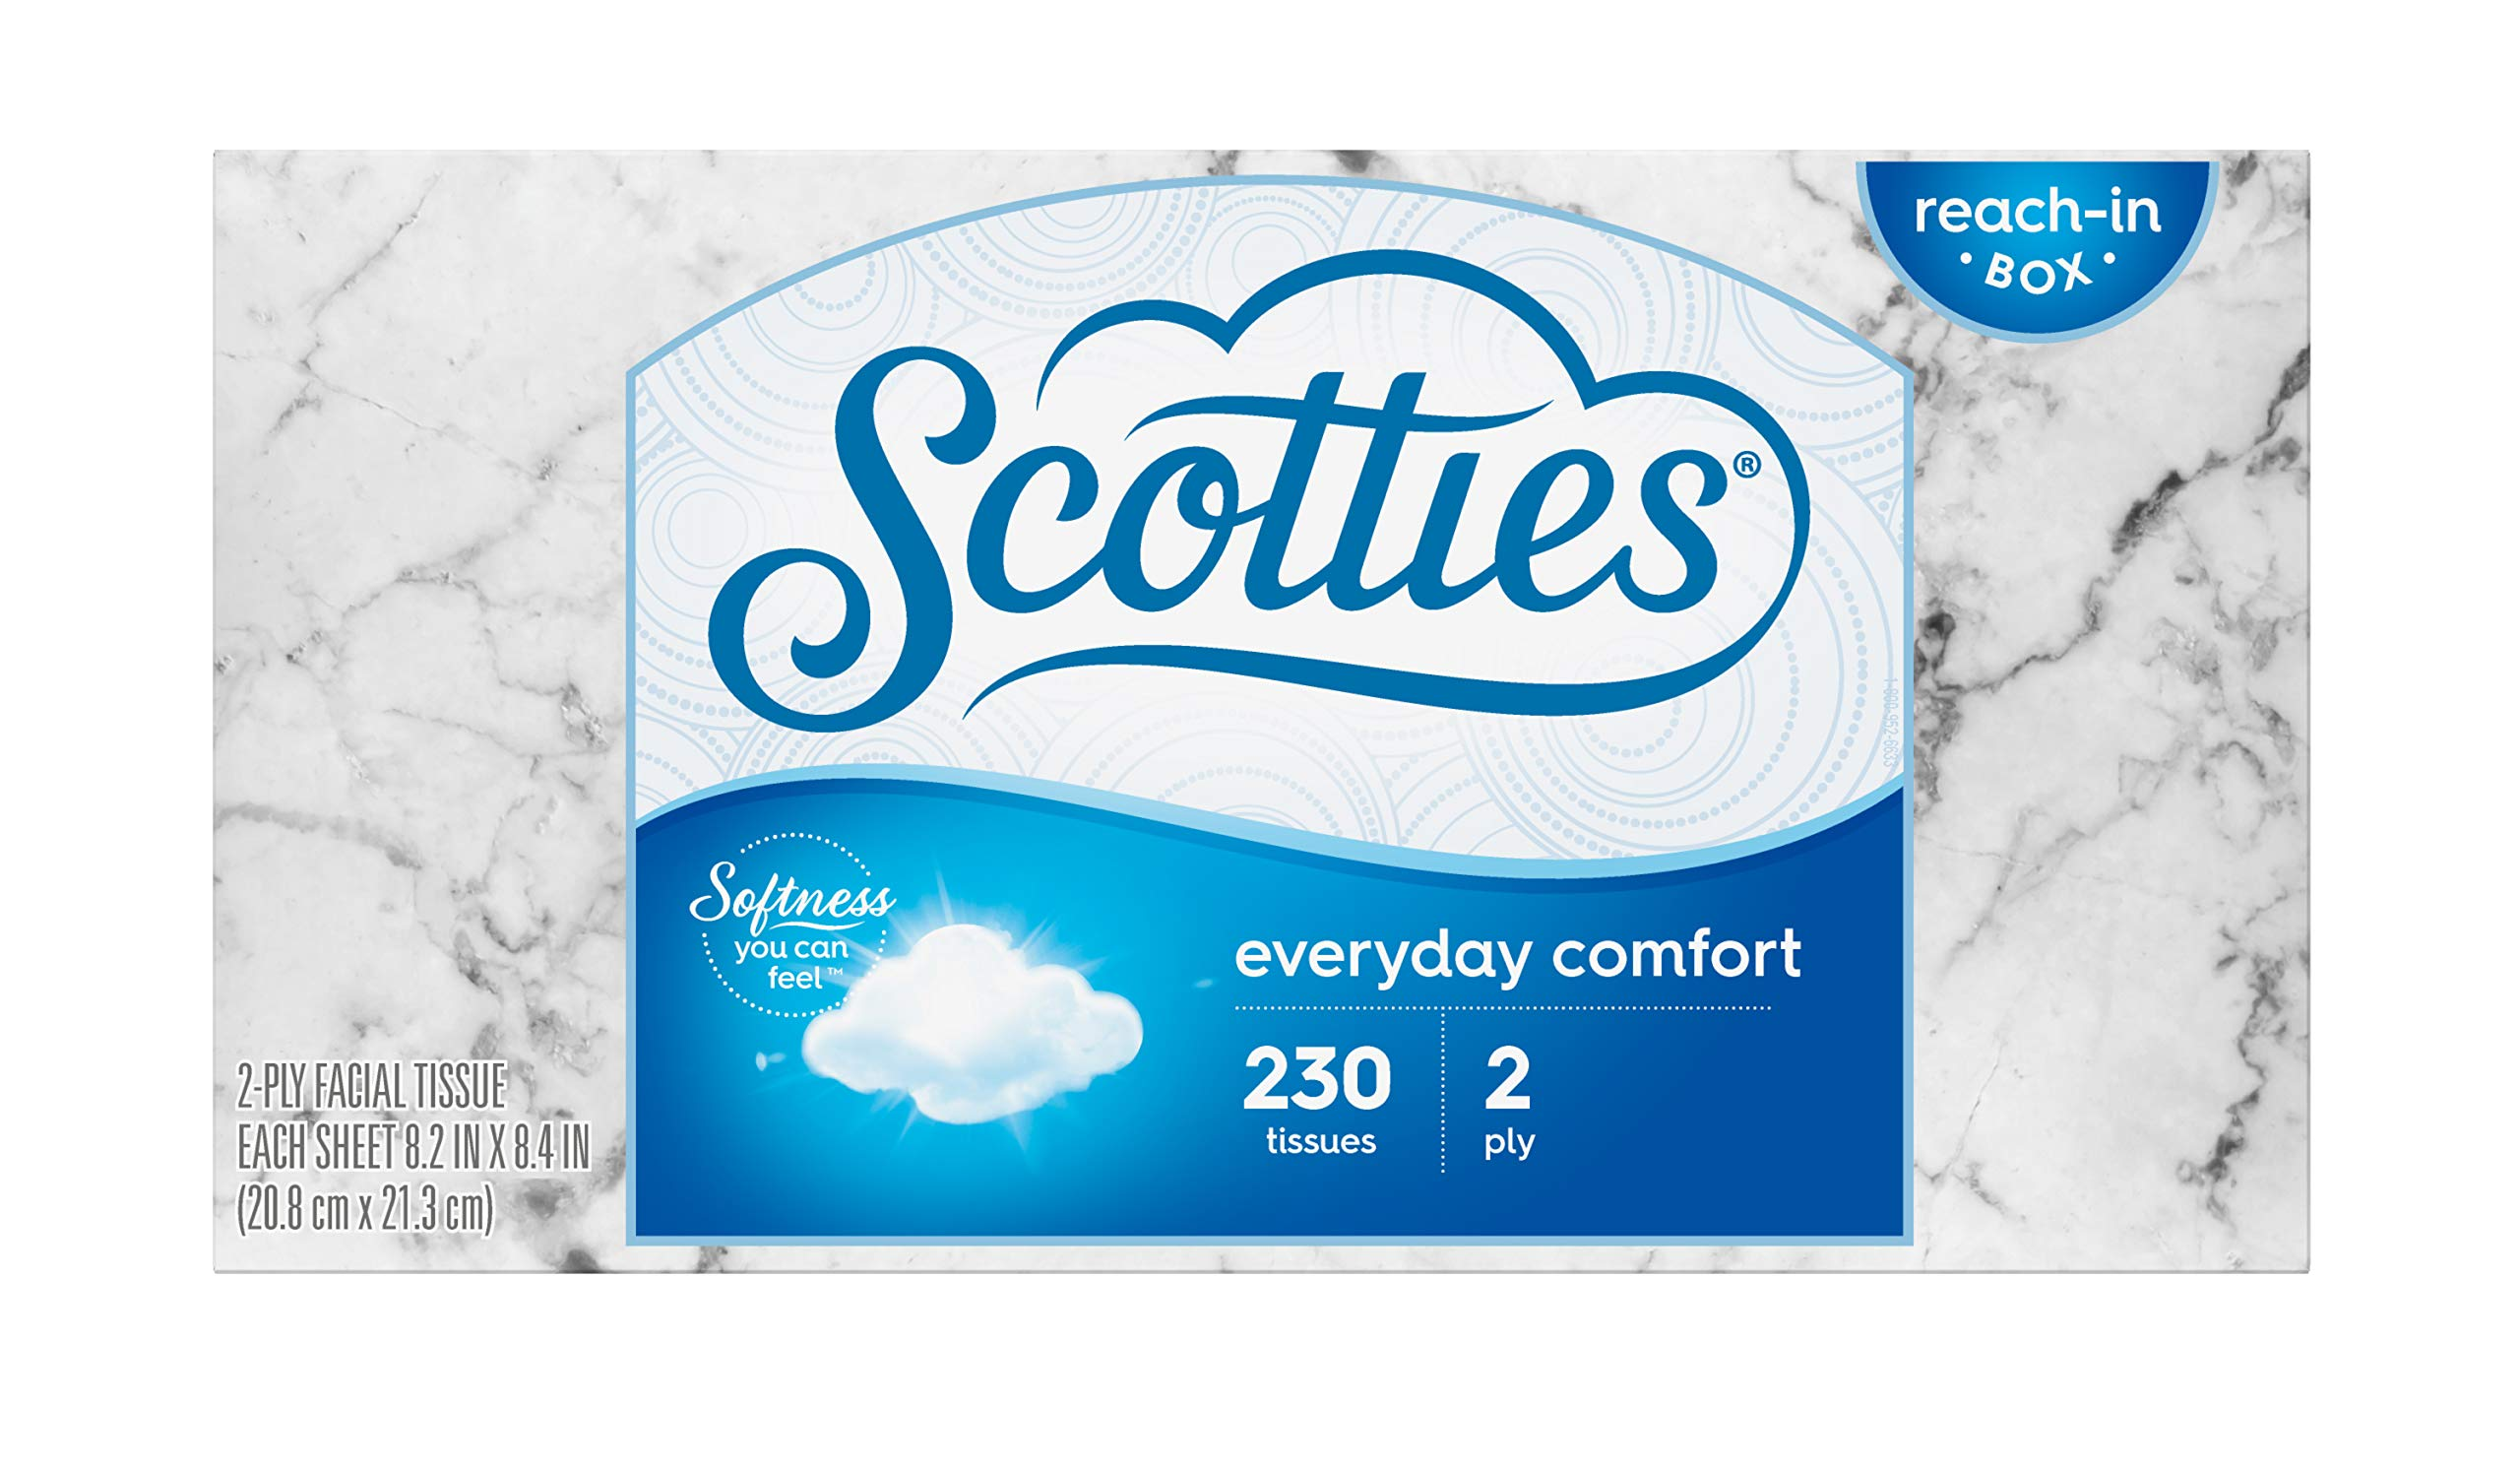 Scotties Everyday Comfort Facial Tissues, 230 Tissues per Box (Pack of 24)